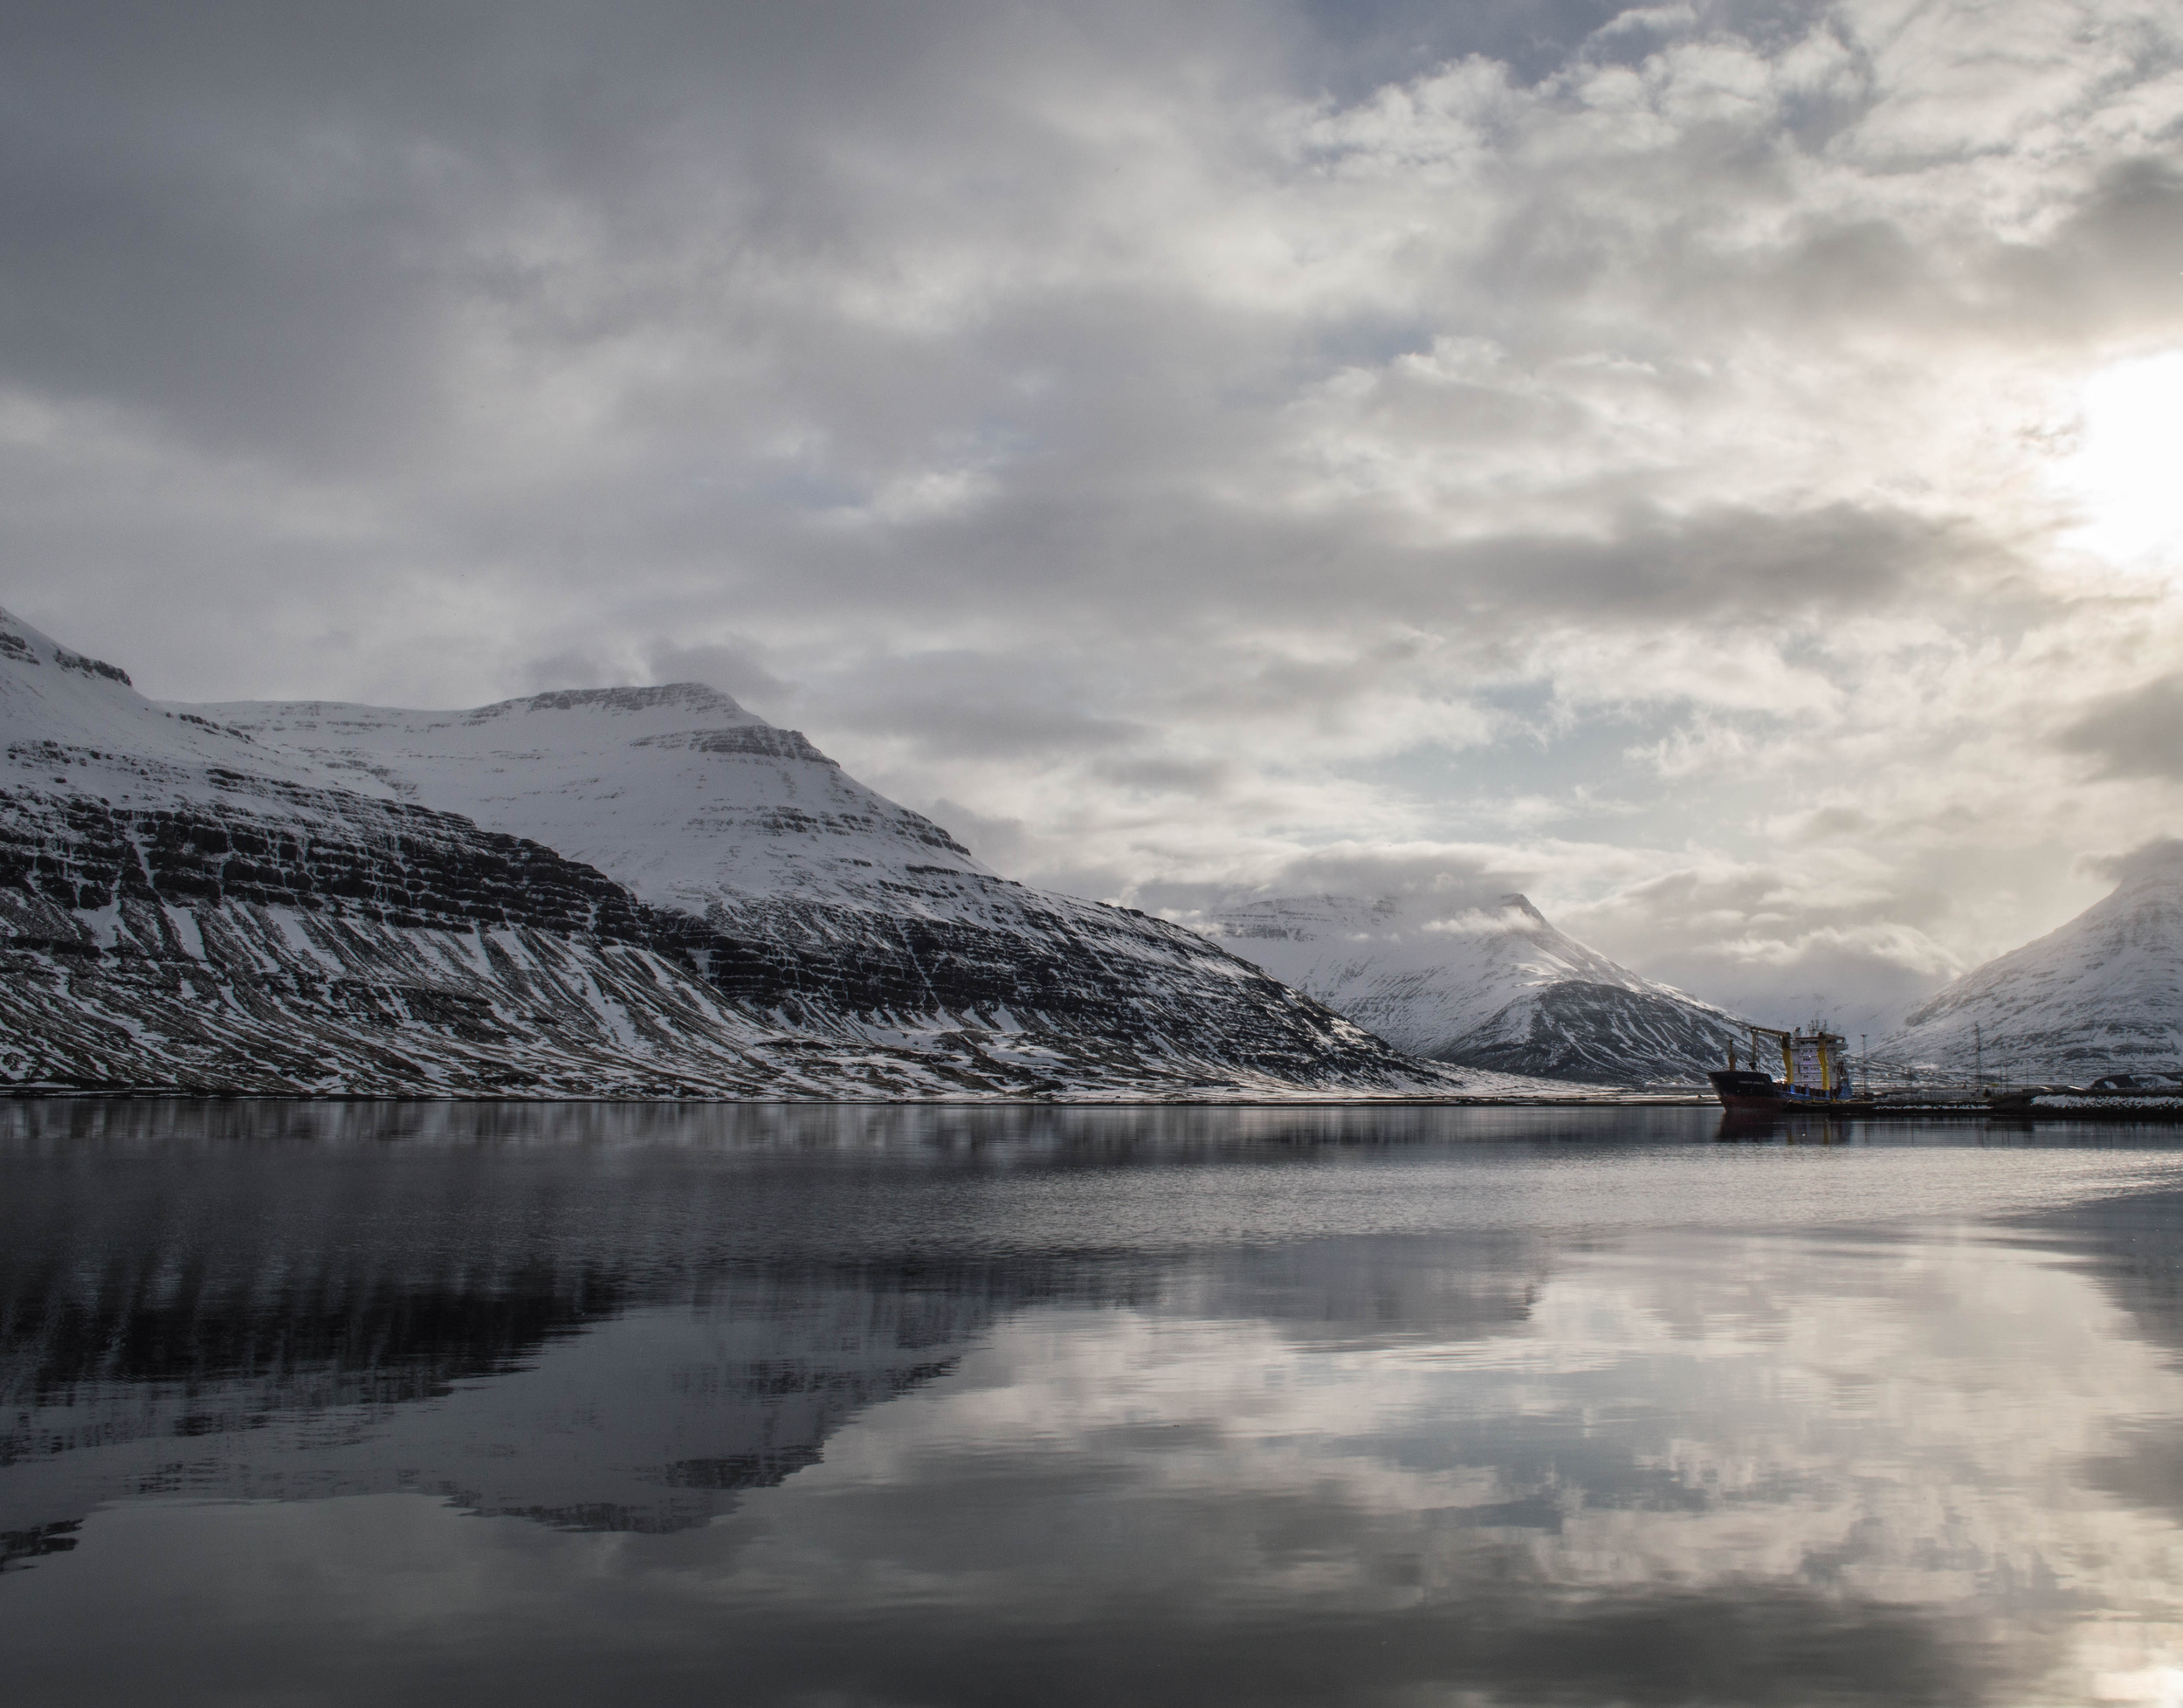 Fjords near the southeastern coast of Iceland.